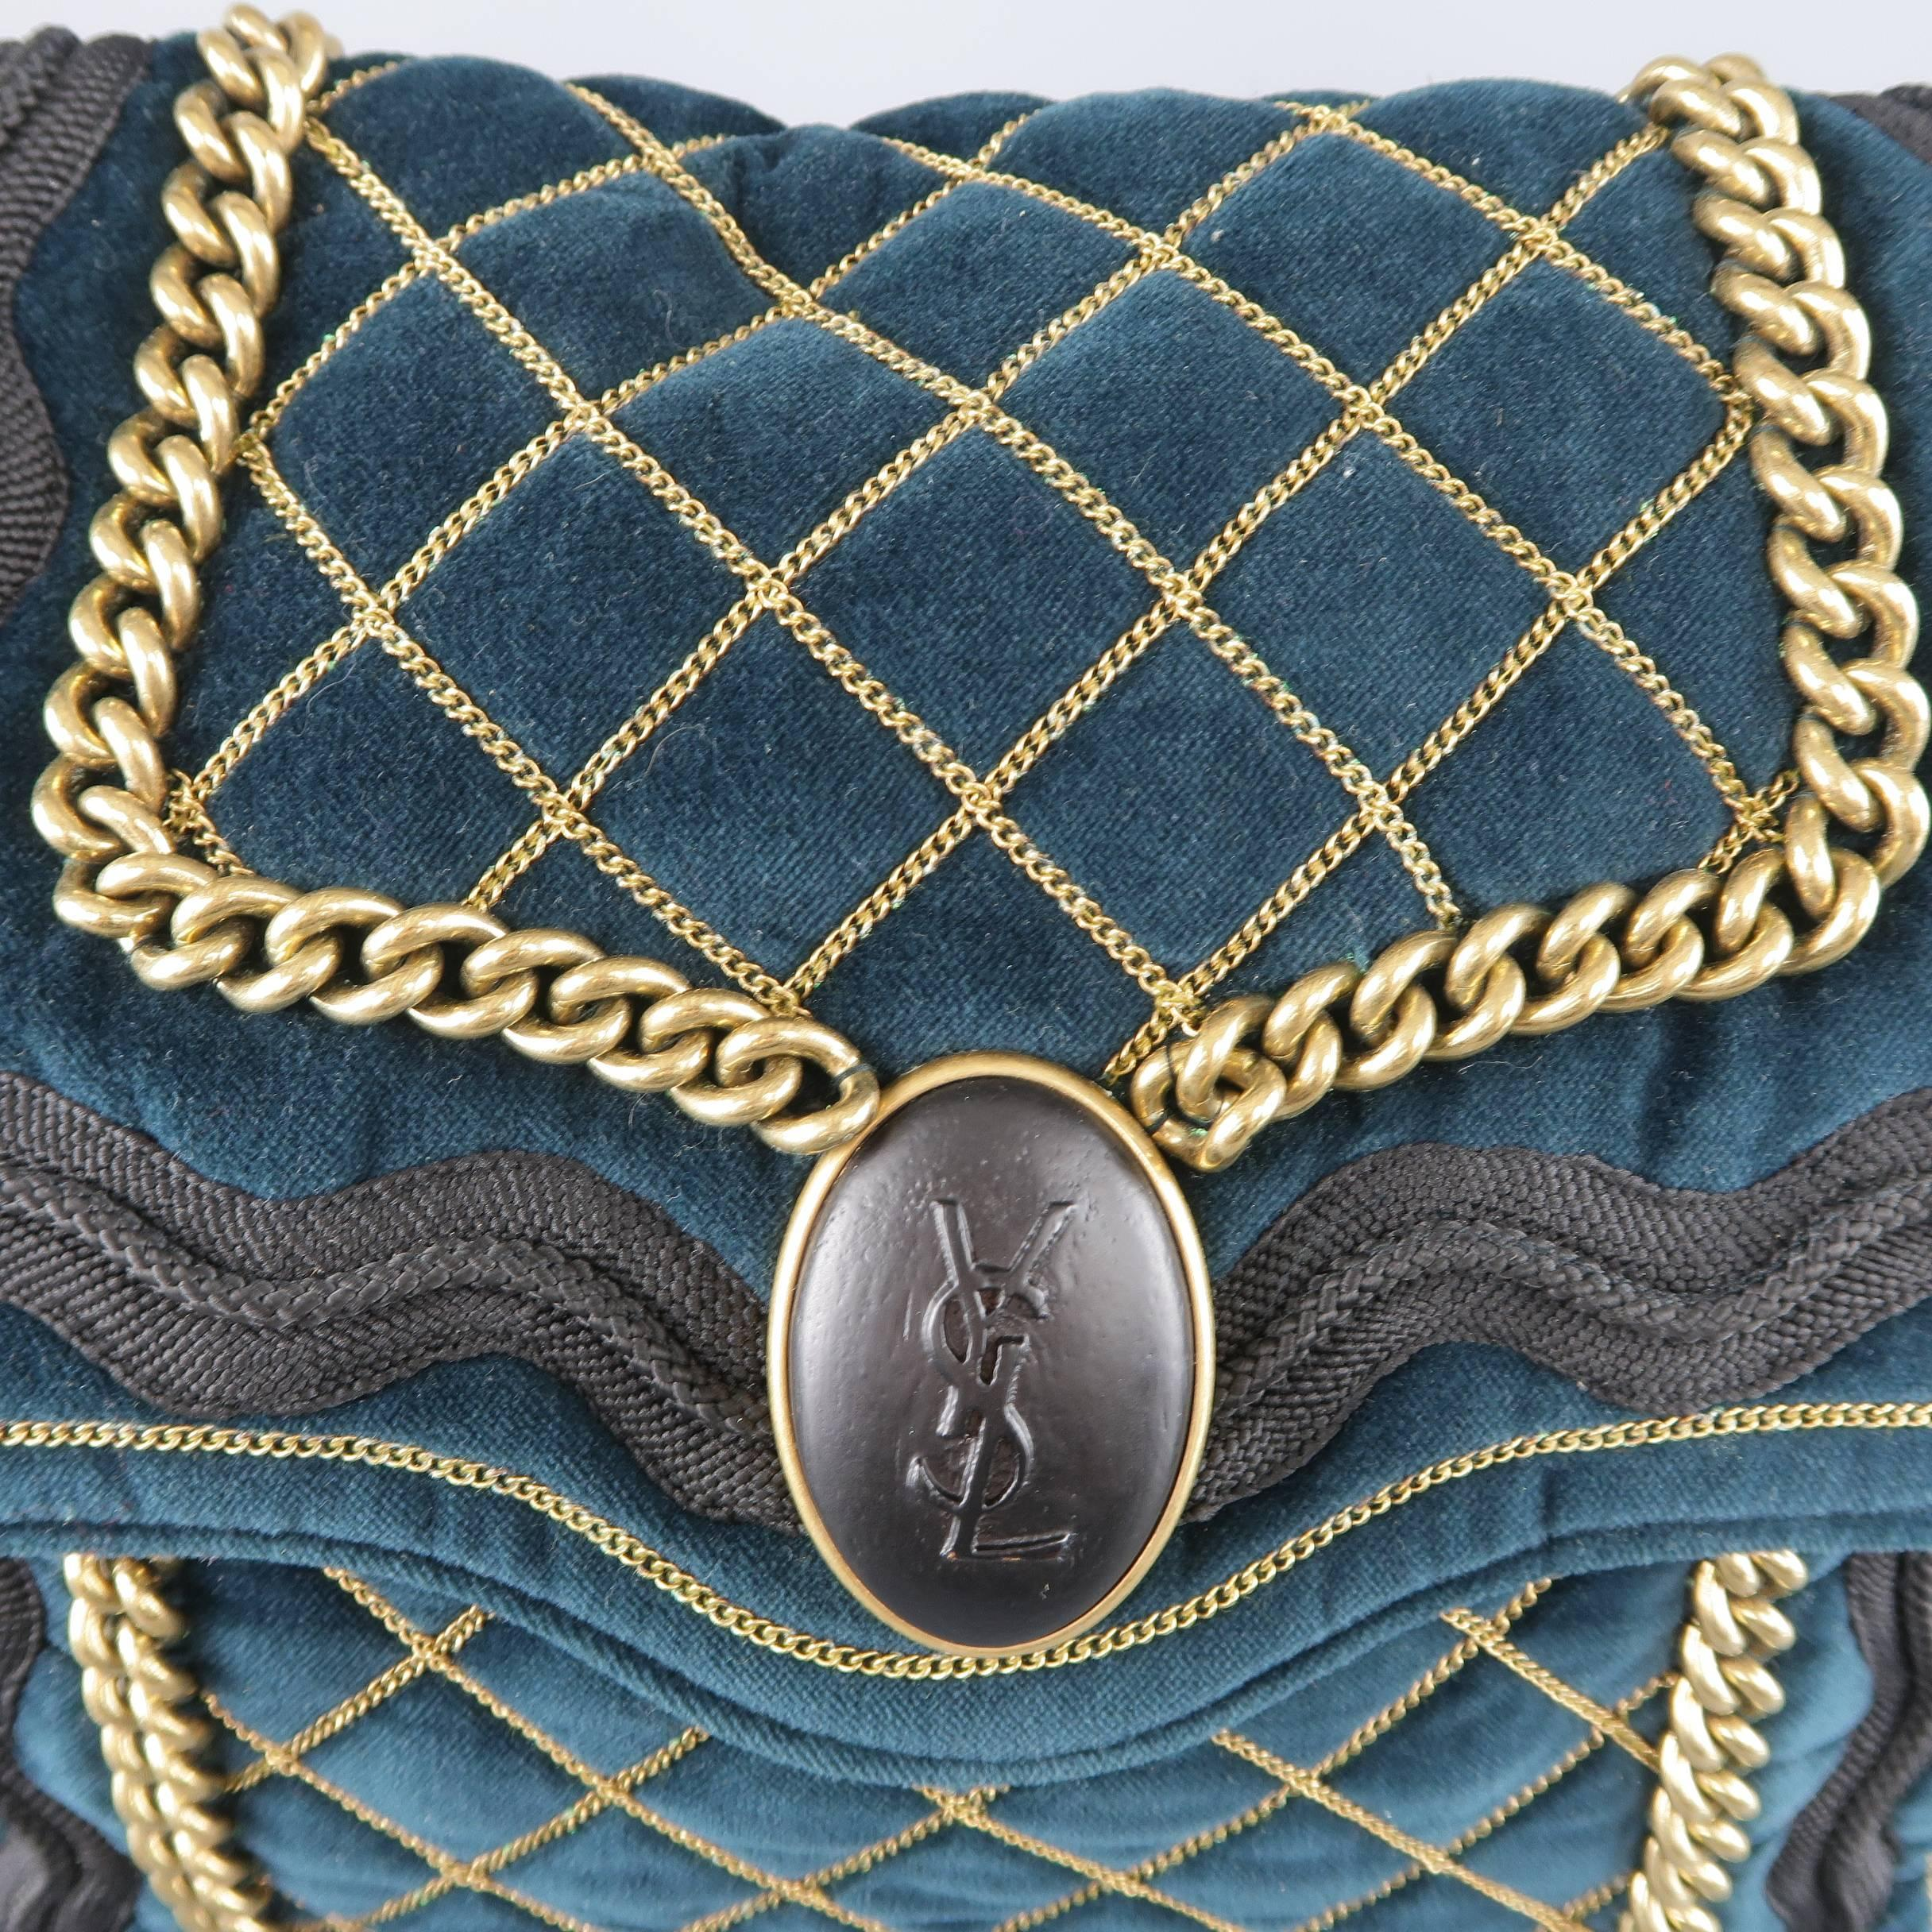 99a298ebd8 Yves Saint Laurent Green and Gold Chain Quilted Velvet Sac Luxembourg Bag  at 1stdibs